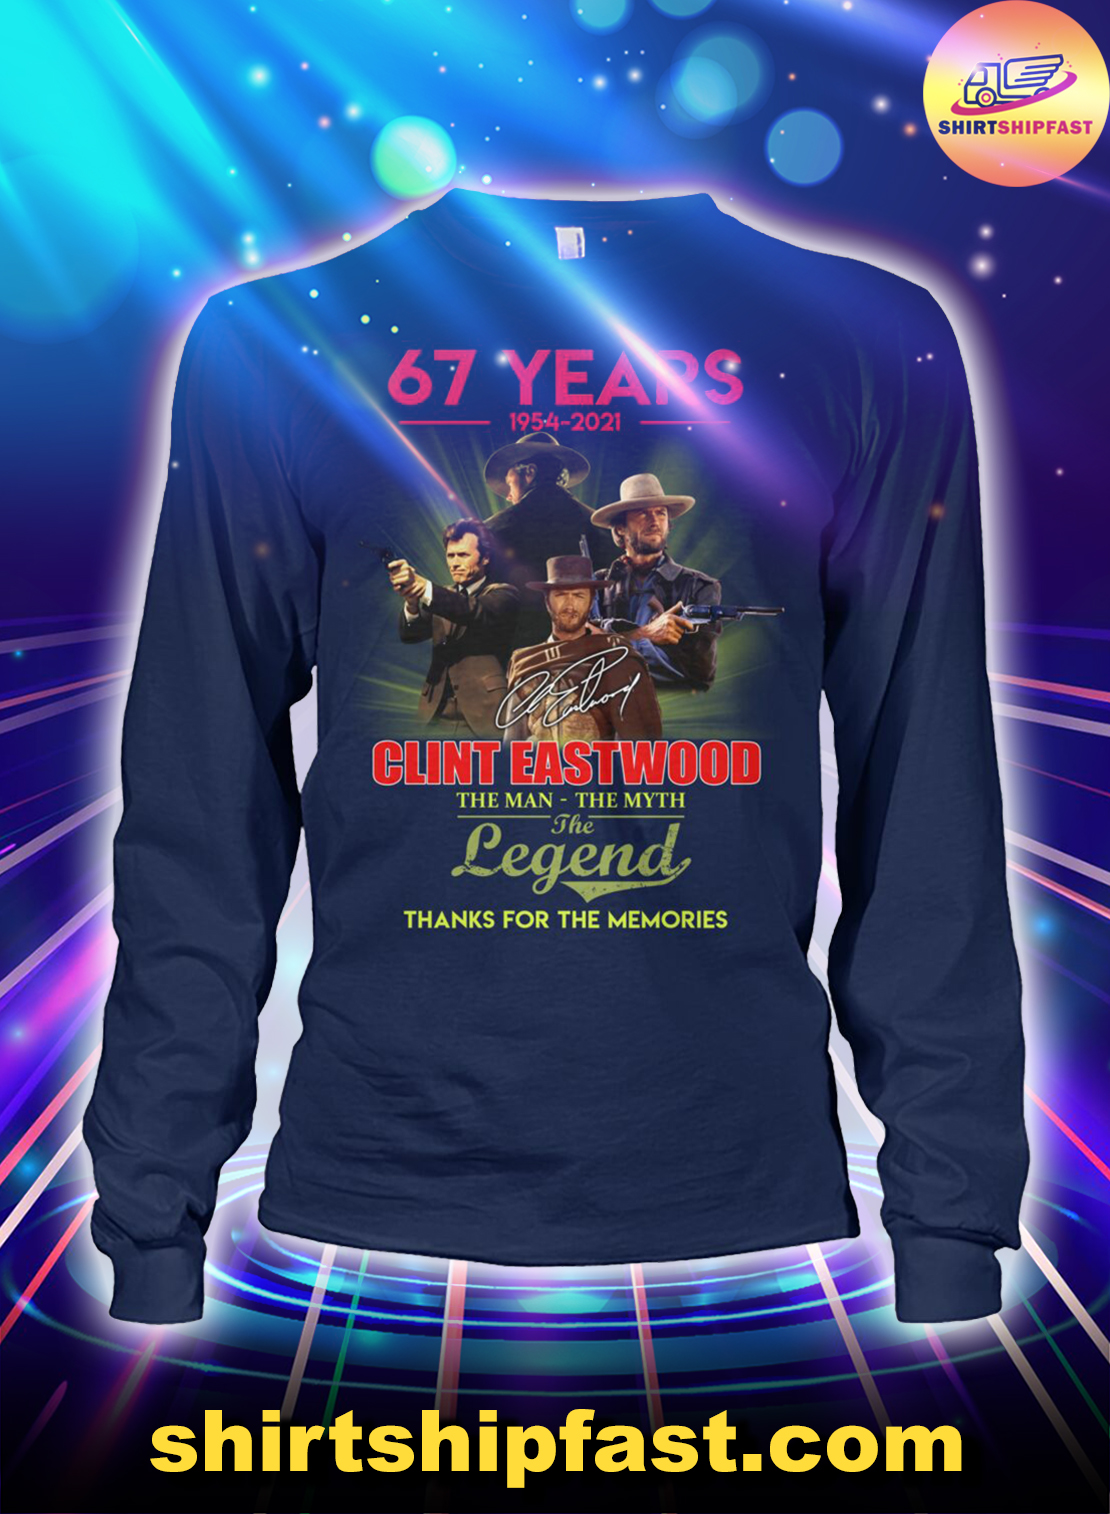 67-years-1954-2021-Clint-Eastwood-The-man-the-myth-the-legend-long-sleeve-tee-2